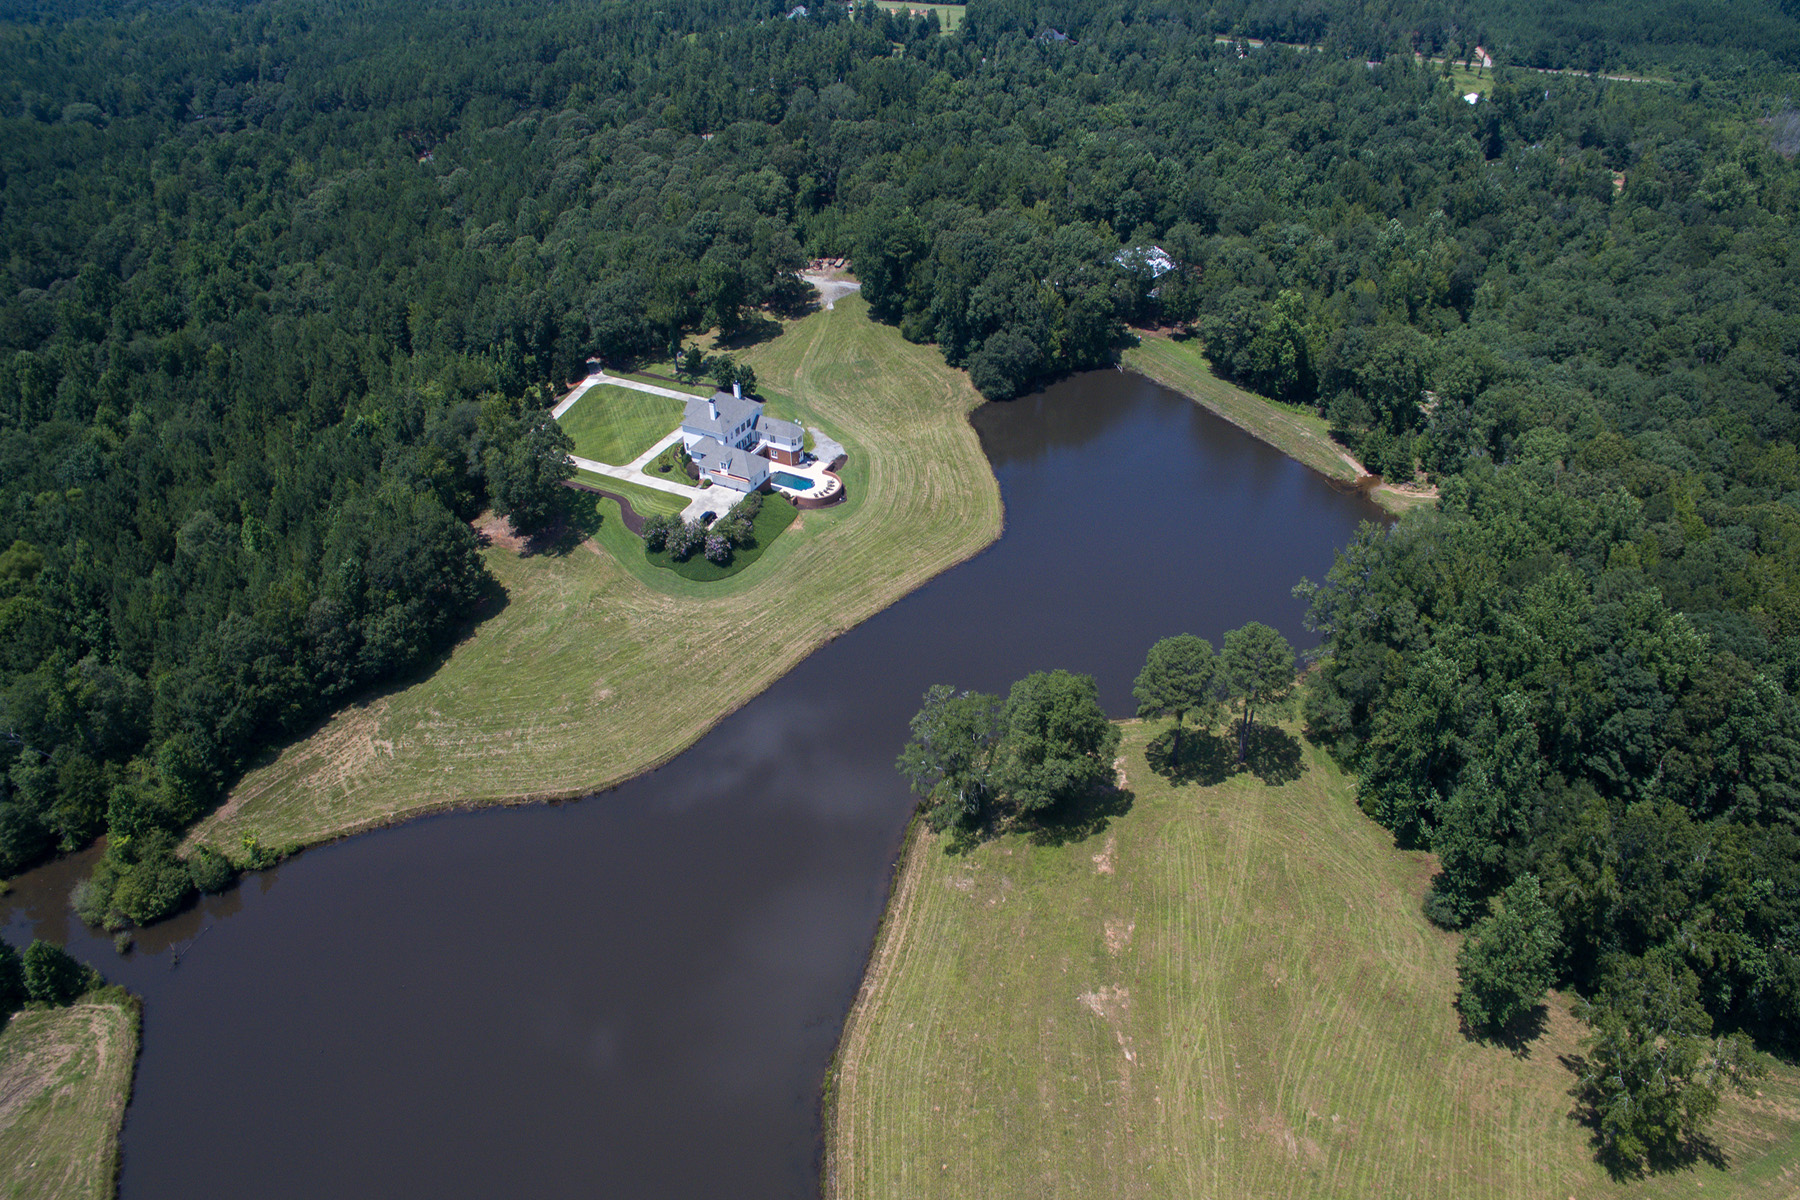 Single Family Homes for Sale at Custom Designed Waterfront Estate 0 Hines Road Moreland, Georgia 30259 United States